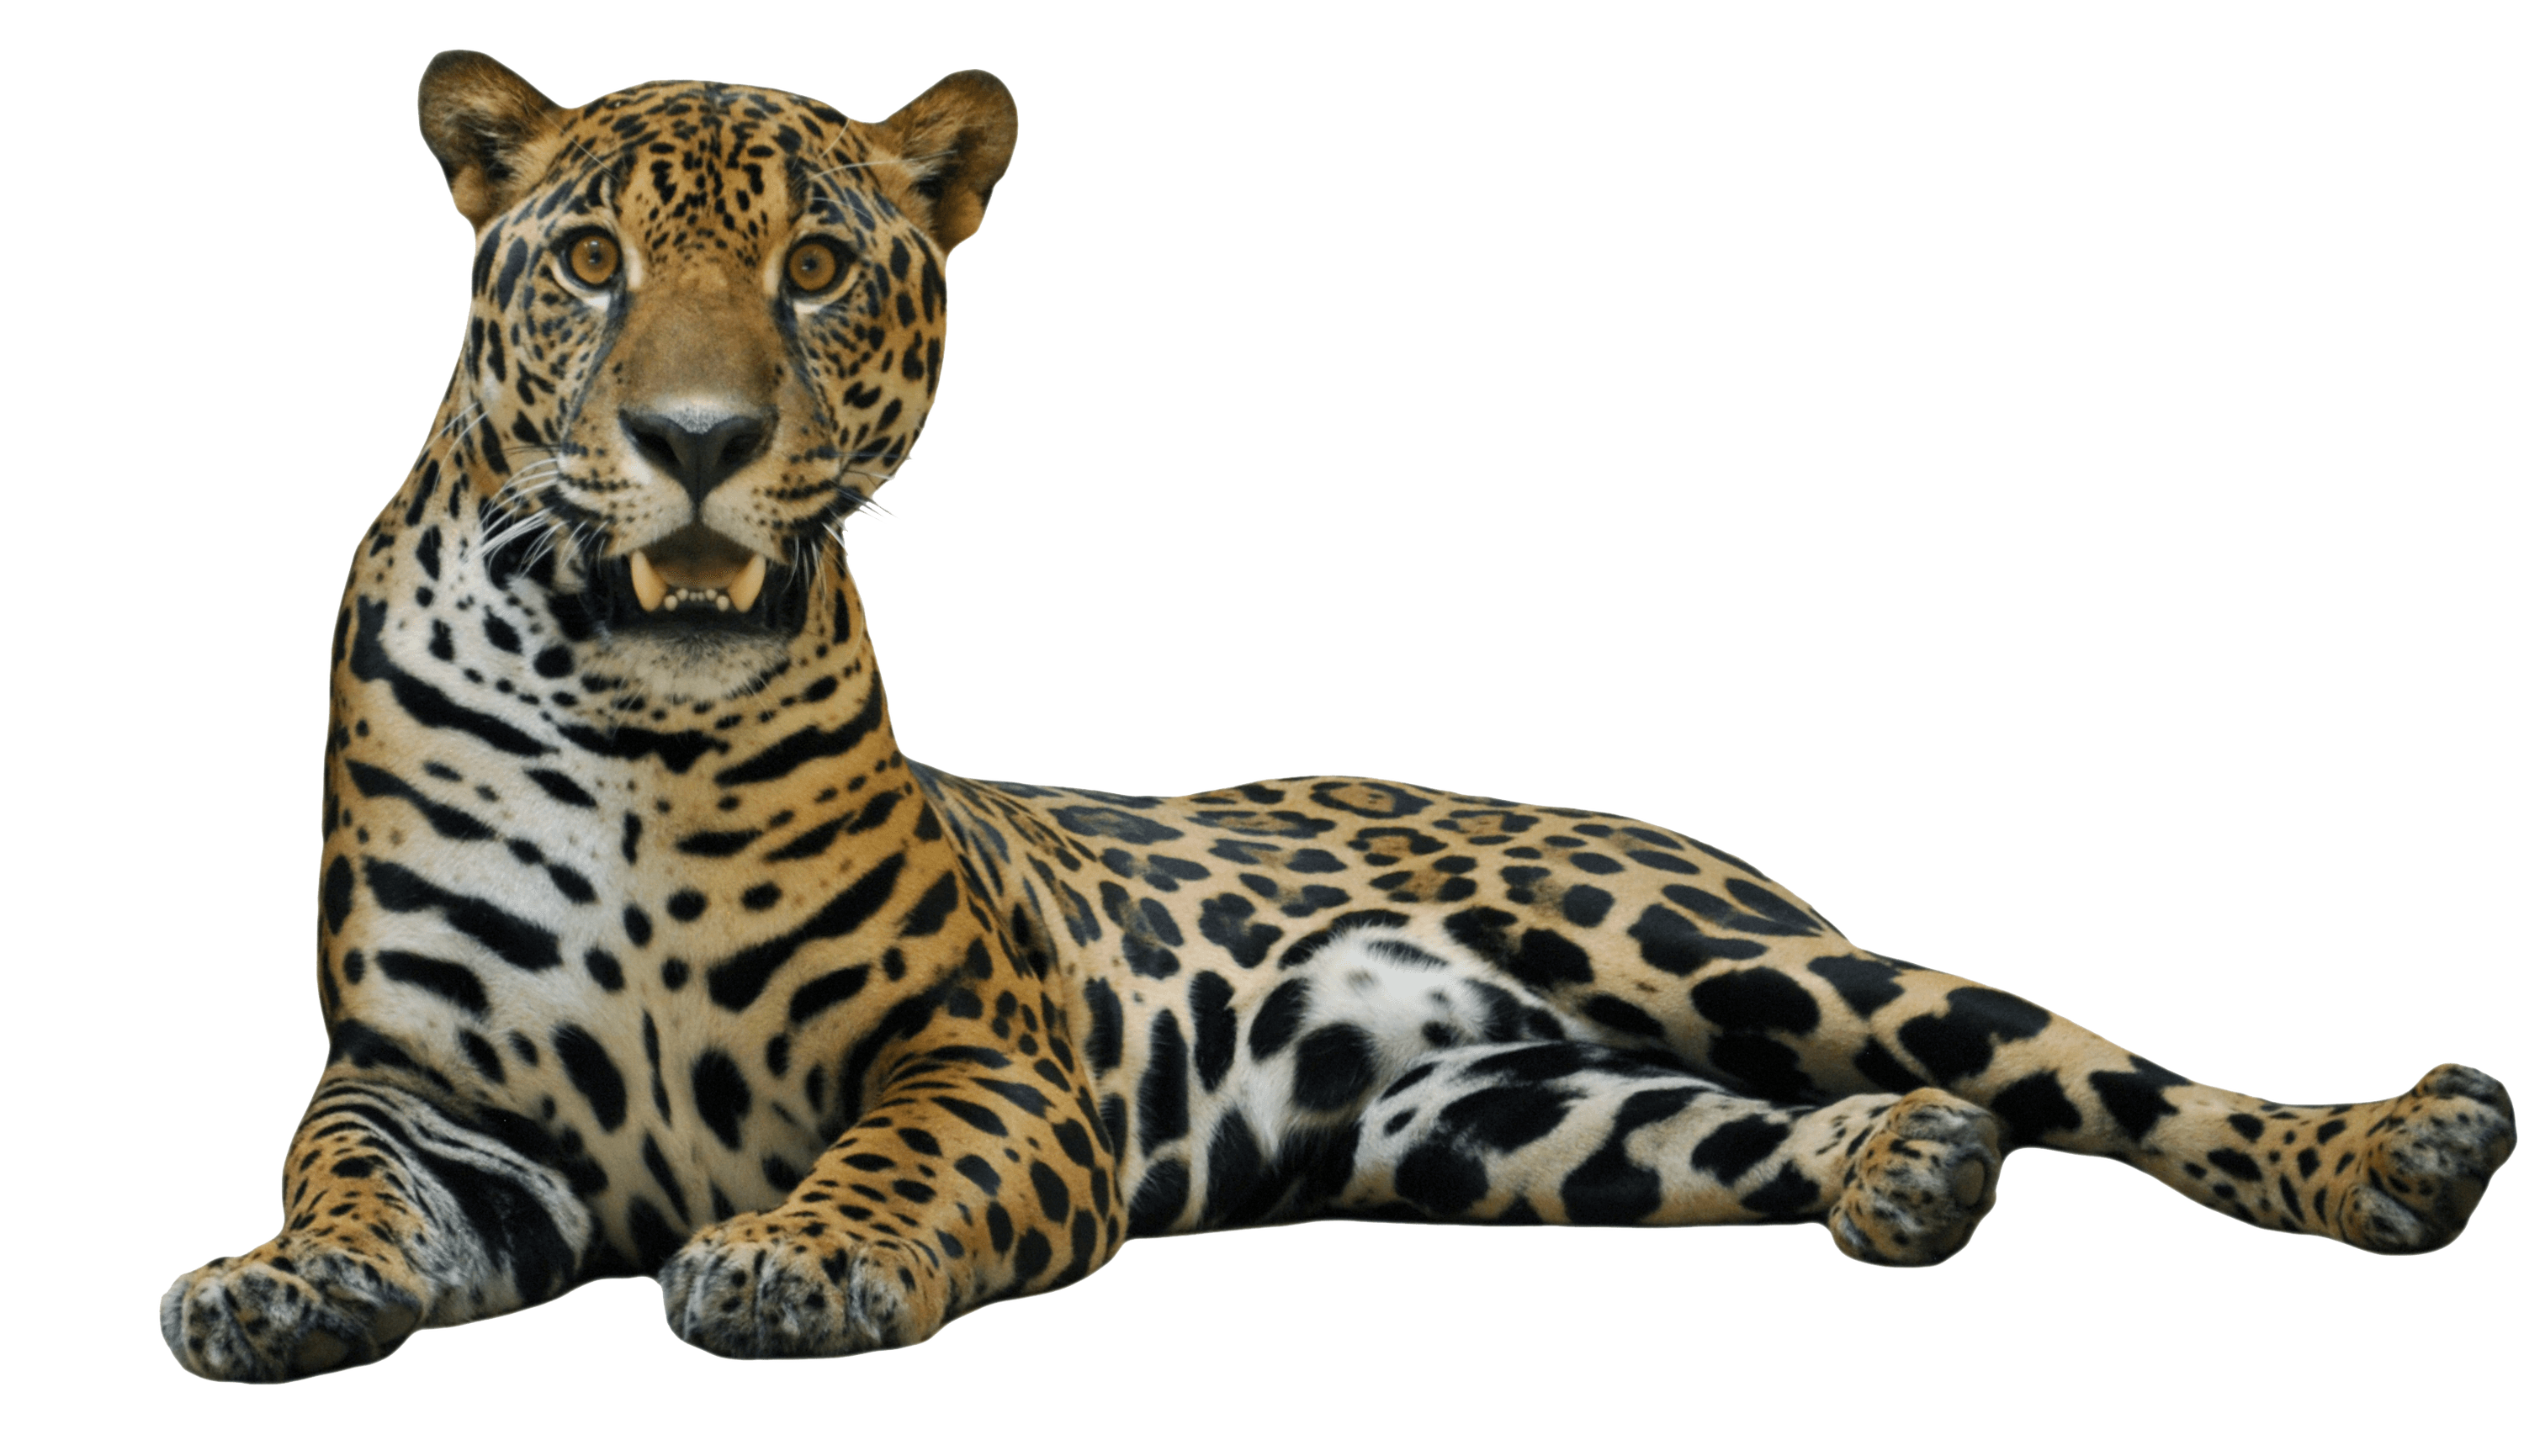 Jaguar animal png. Lying down transparent stickpng